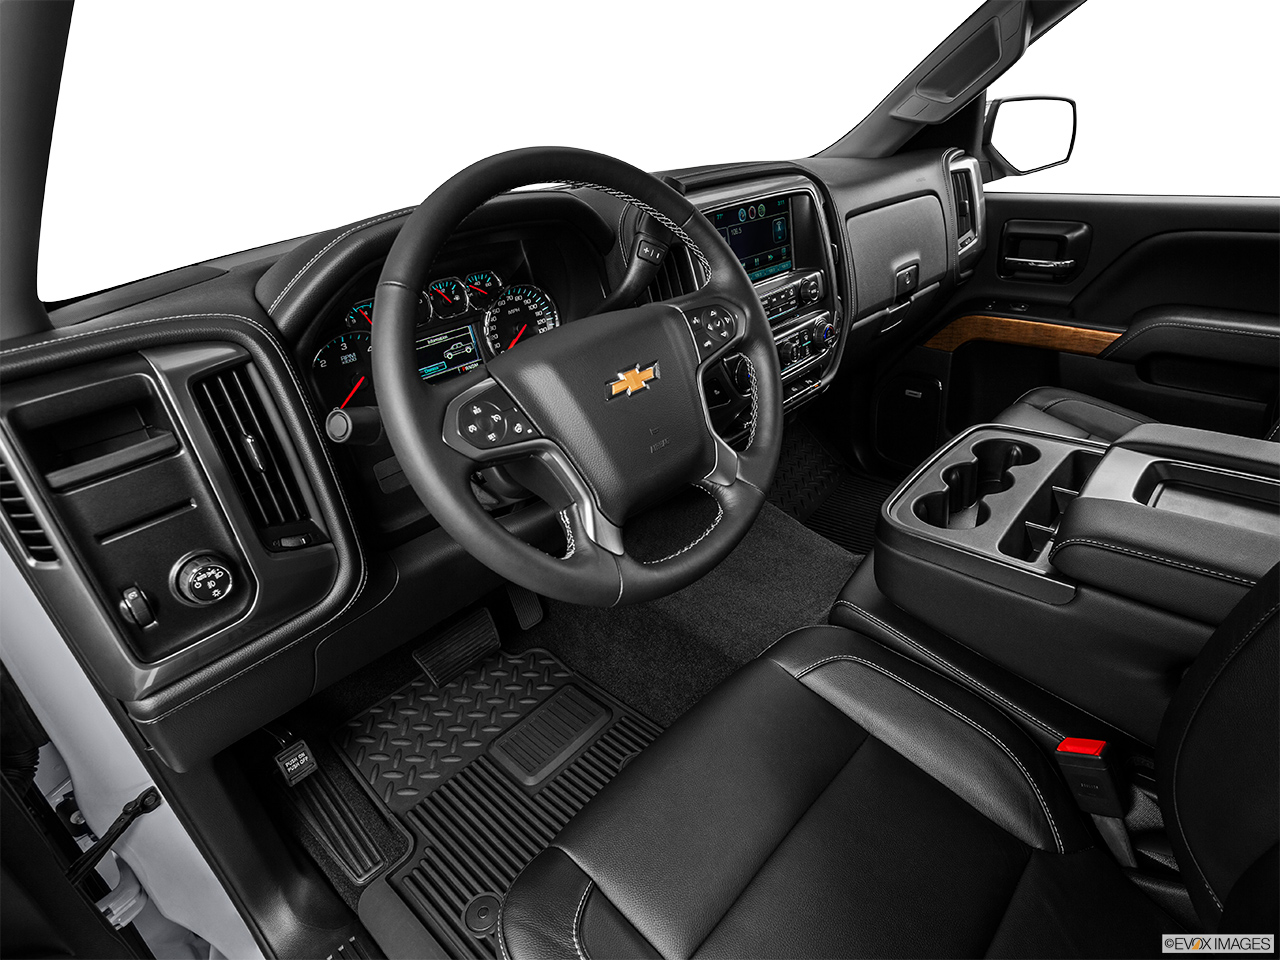 2014 chevy silverado ltz interior images galleries with a bite. Black Bedroom Furniture Sets. Home Design Ideas